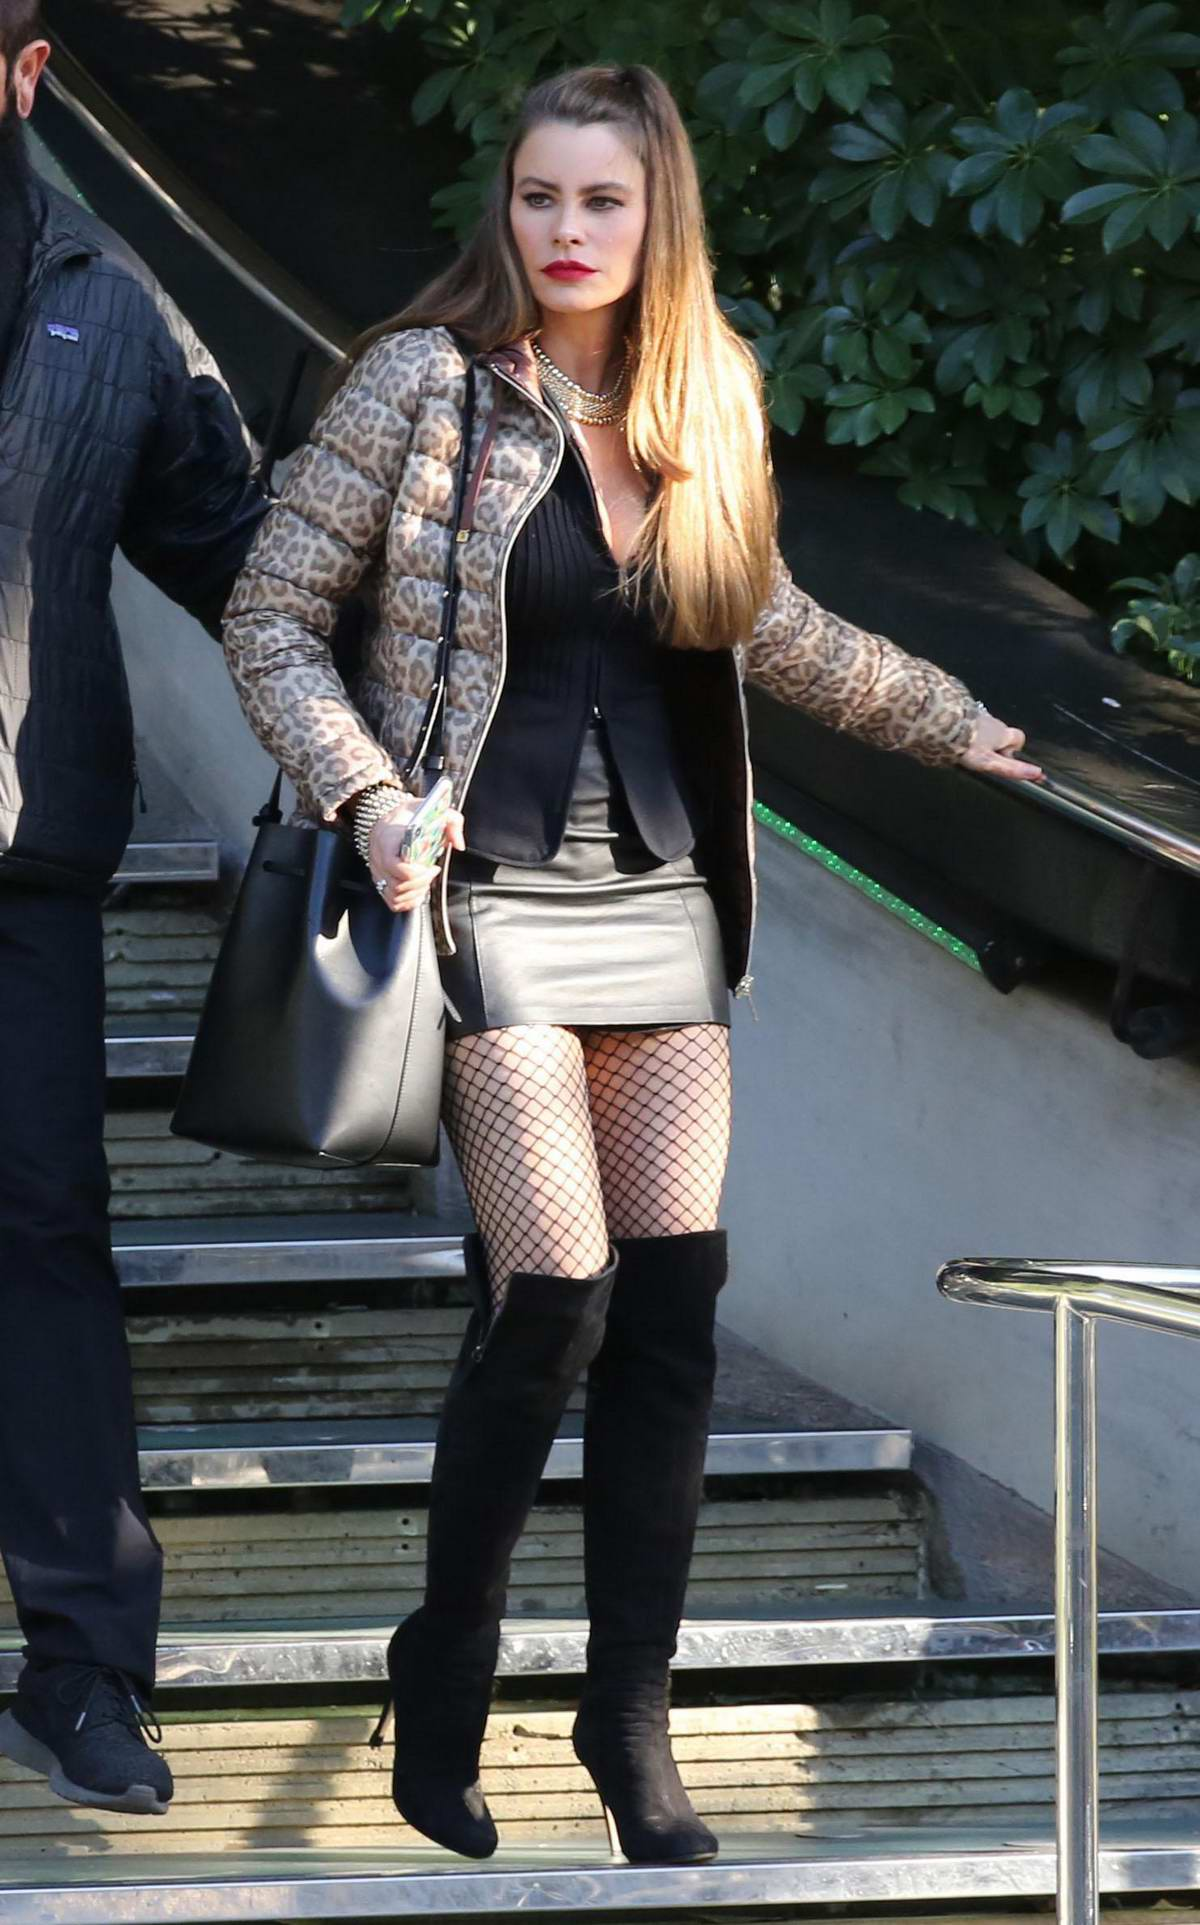 Sofia Vergara dressed in a mini skirt paired with high knee boots filming a scene on the set of 'Modern Family' in Los Angeles